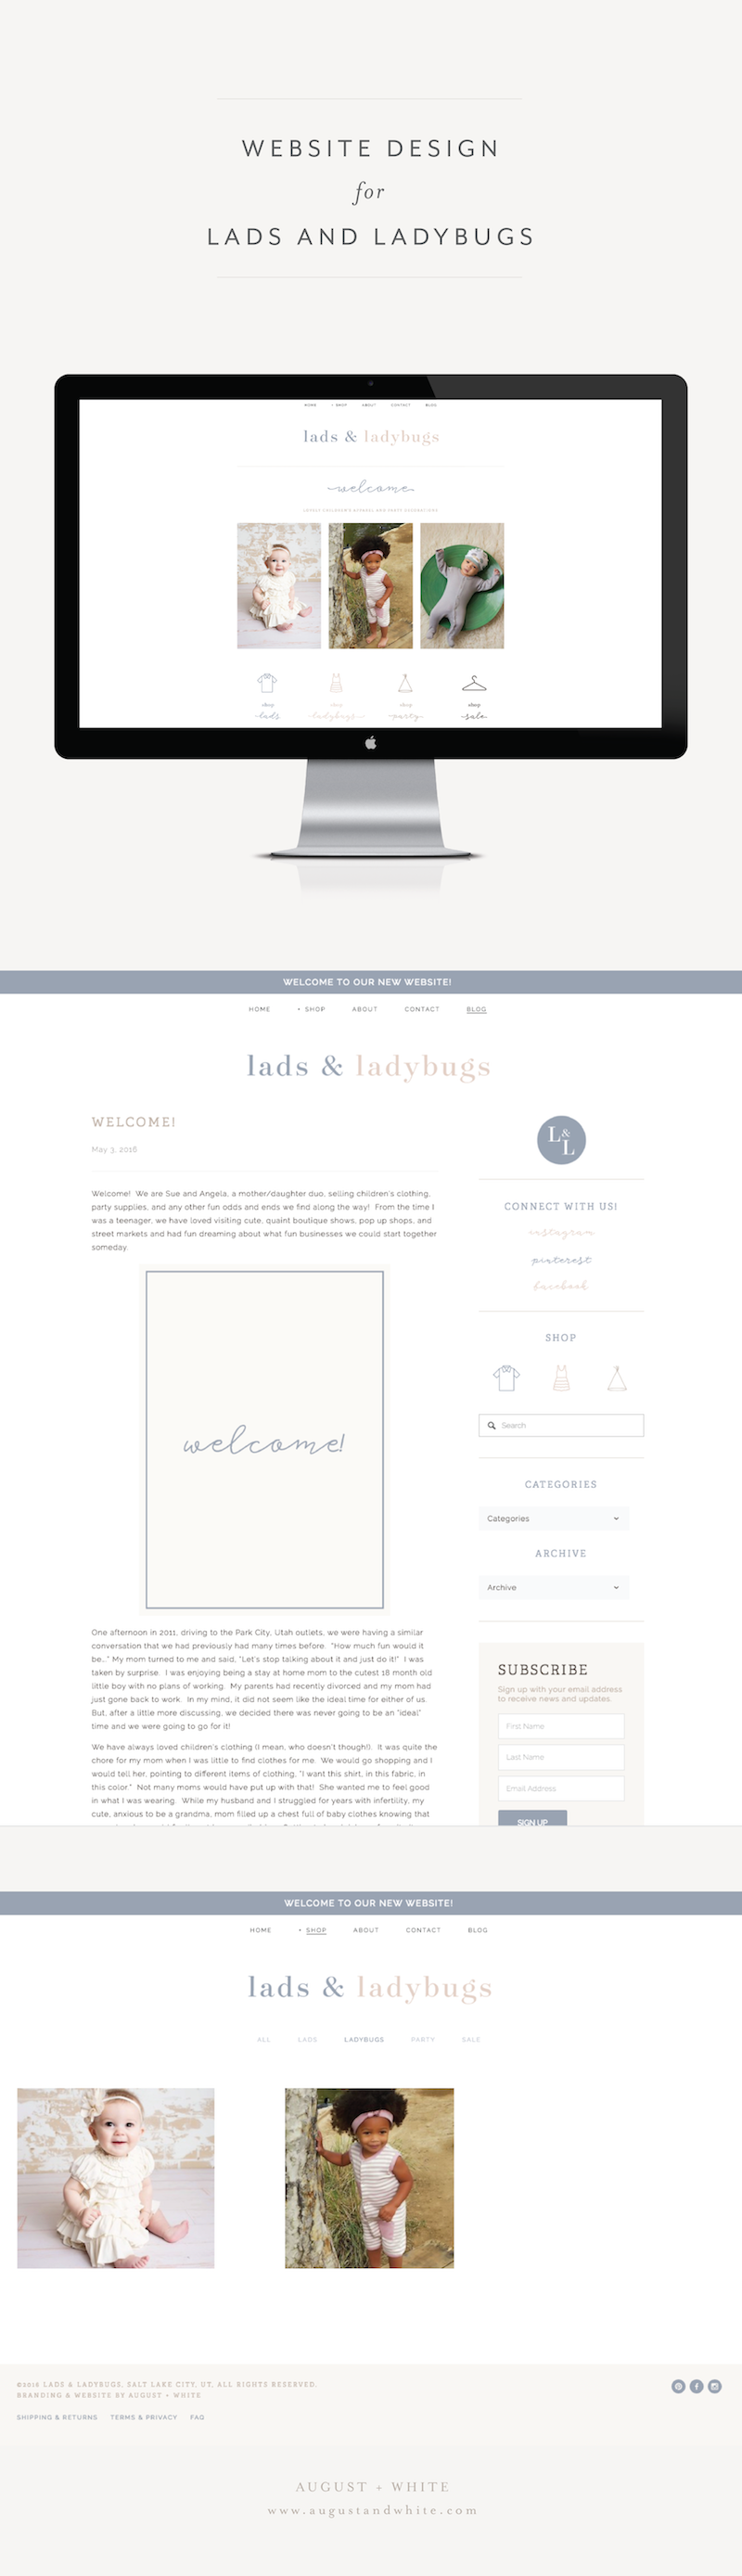 lads and ladybugs website design.png